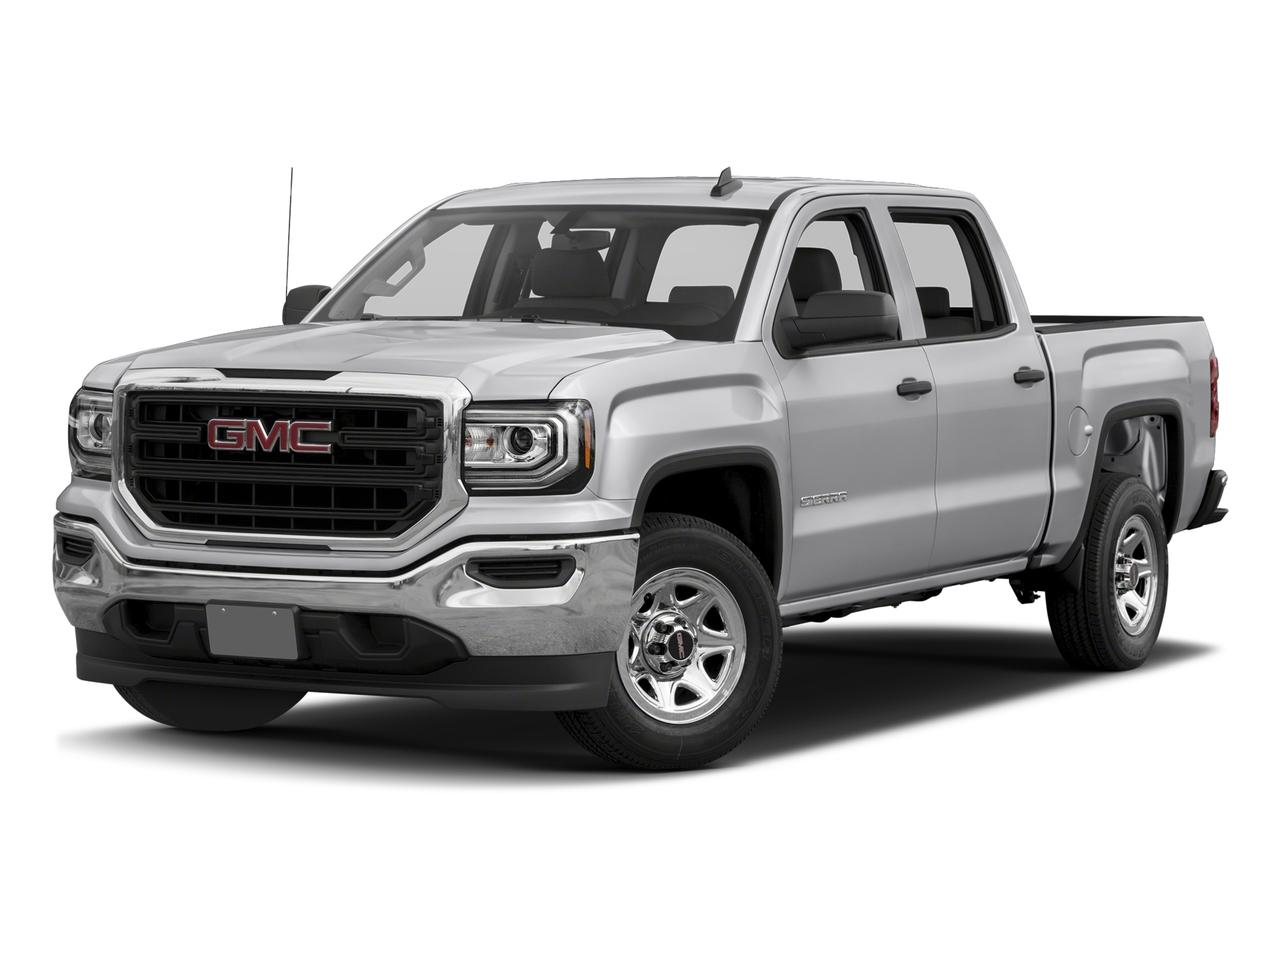 2017 GMC Sierra 1500 Vehicle Photo in Anchorage, AK 99515